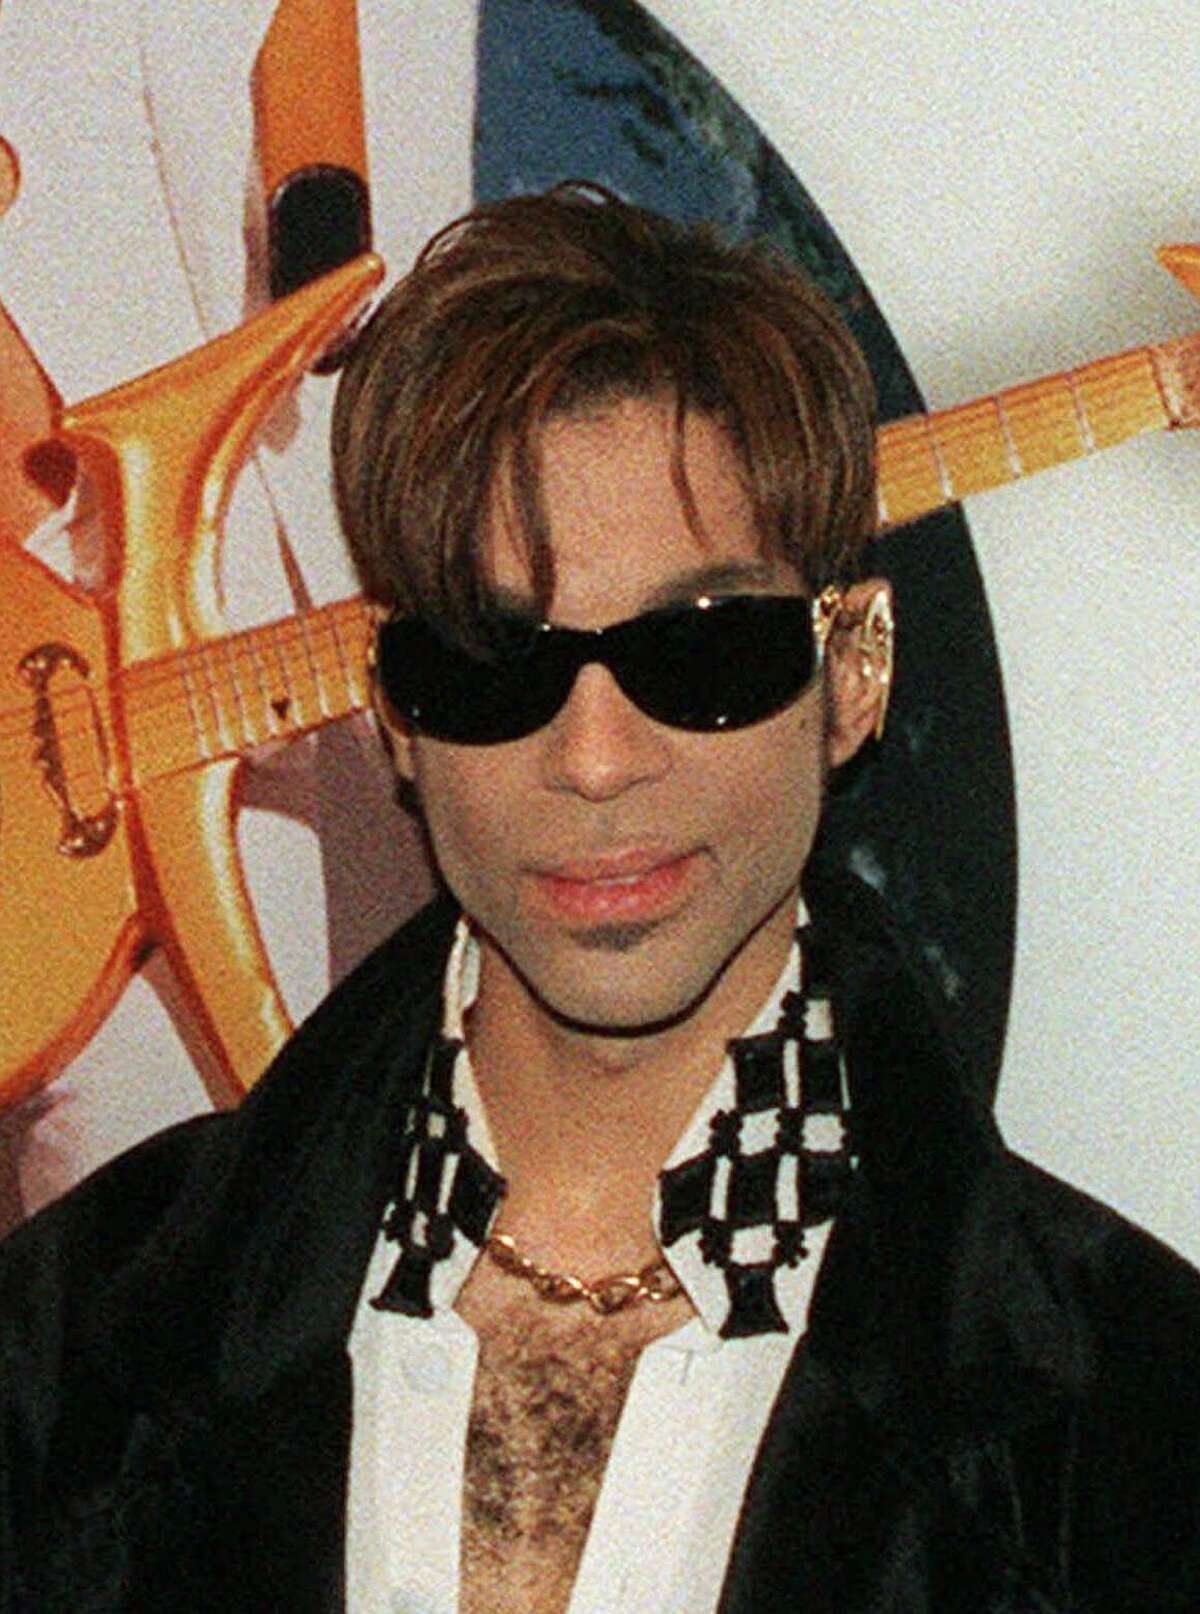 FILE--The artist formerly known as Prince is shown in this July 22, 1997, file photo. The artist formerly known as Prince donated $37,000 to the flood-ravaged town that bears his old name, Princeville. The musician contributed the money after reading articles about the devastation wreaked on the town of 2,100 by Hurricane Floyd. (AP Photo/Adam Nadel,file)